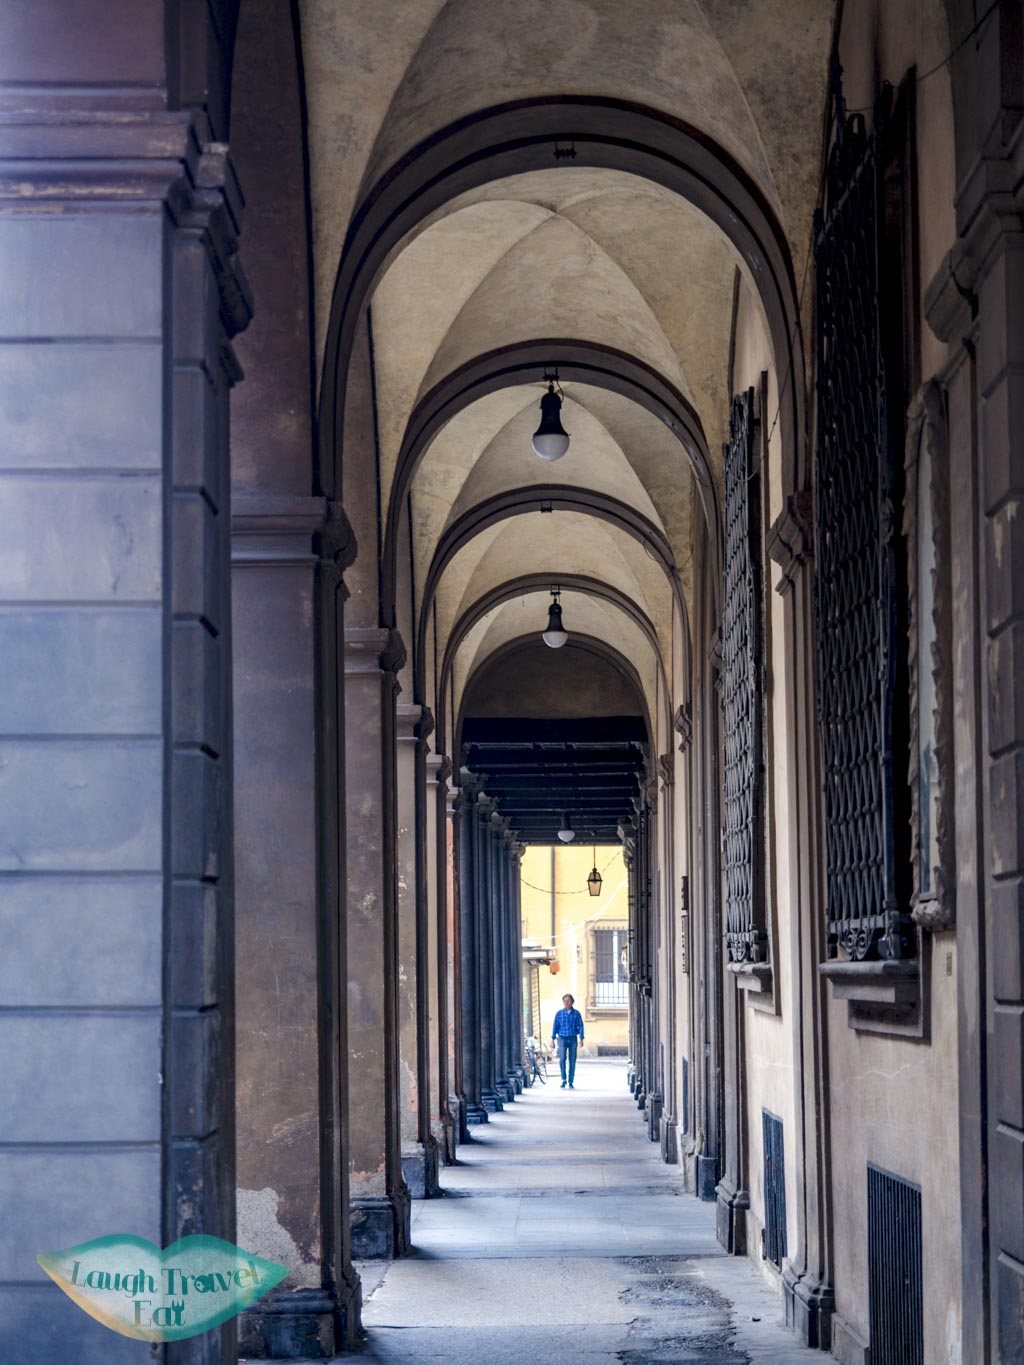 restaurants at a covered walkway bologna emilia romagna italy - laugh travel eat-3